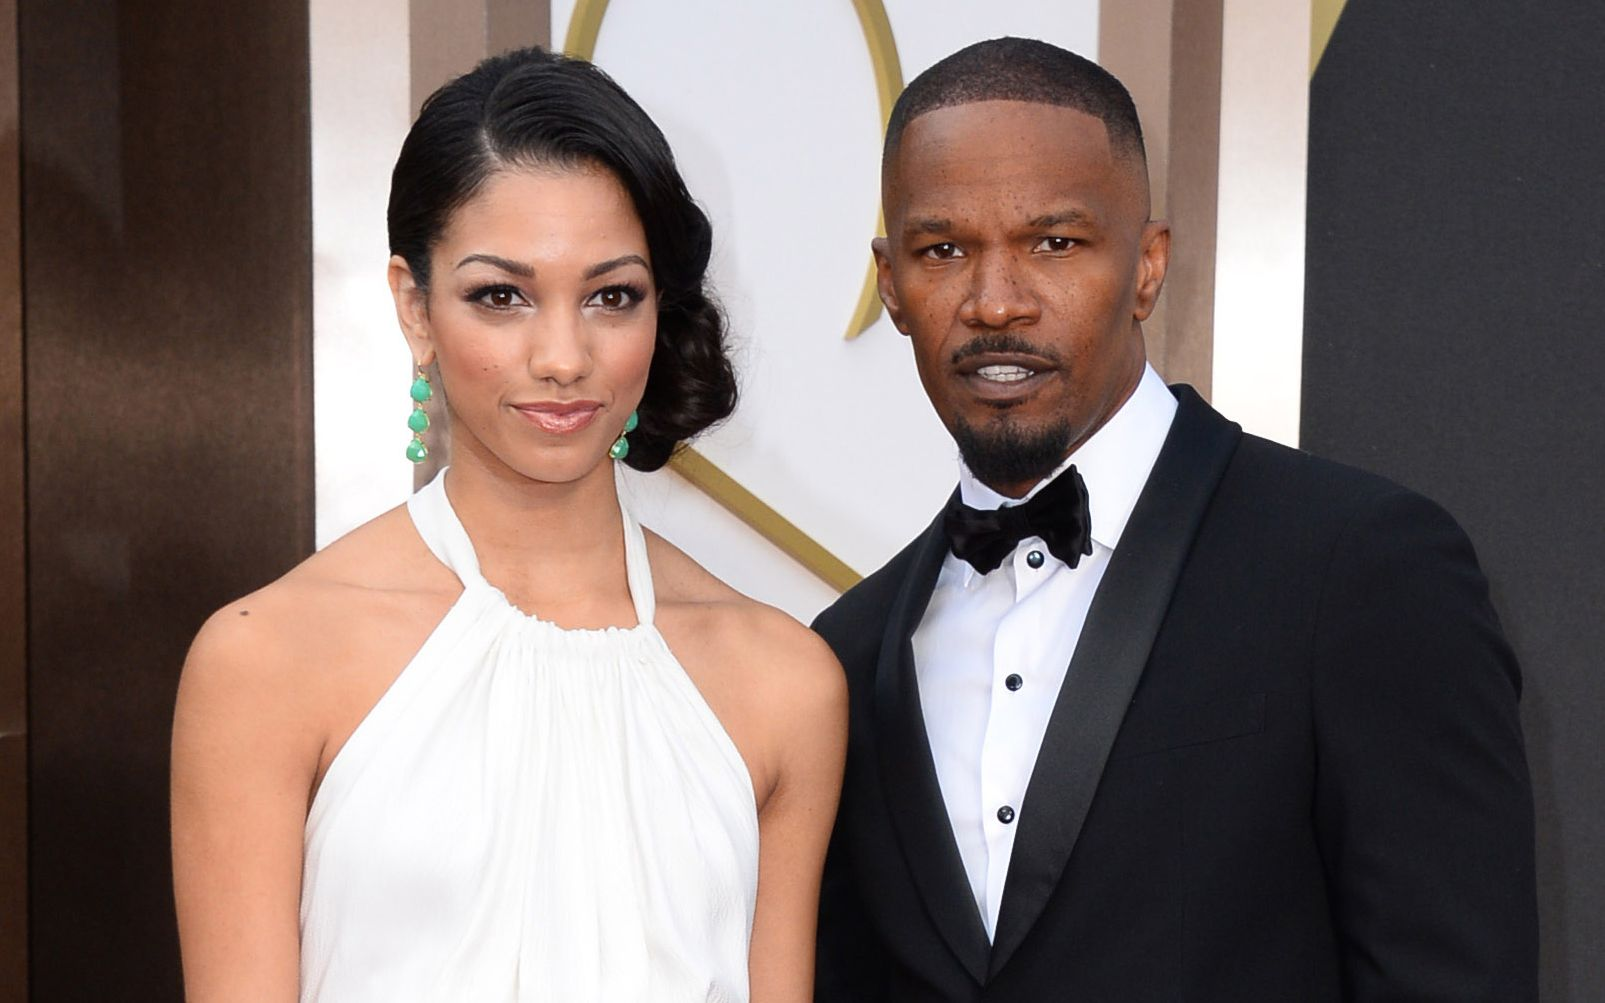 Actor Jamie Foxx, right, and daughter Corinne, arrive at the Oscars at the Dolby Theatre in Los Angeles. The Hollywood Foreign Press Association announced, that Corinne Foxx will serve as Miss Golden Globe at the ceremony in January. The Golden Globes will be presented Jan. 10, 2016Miss Golden Globe, Los Angeles, USA - 2 Mar 2014